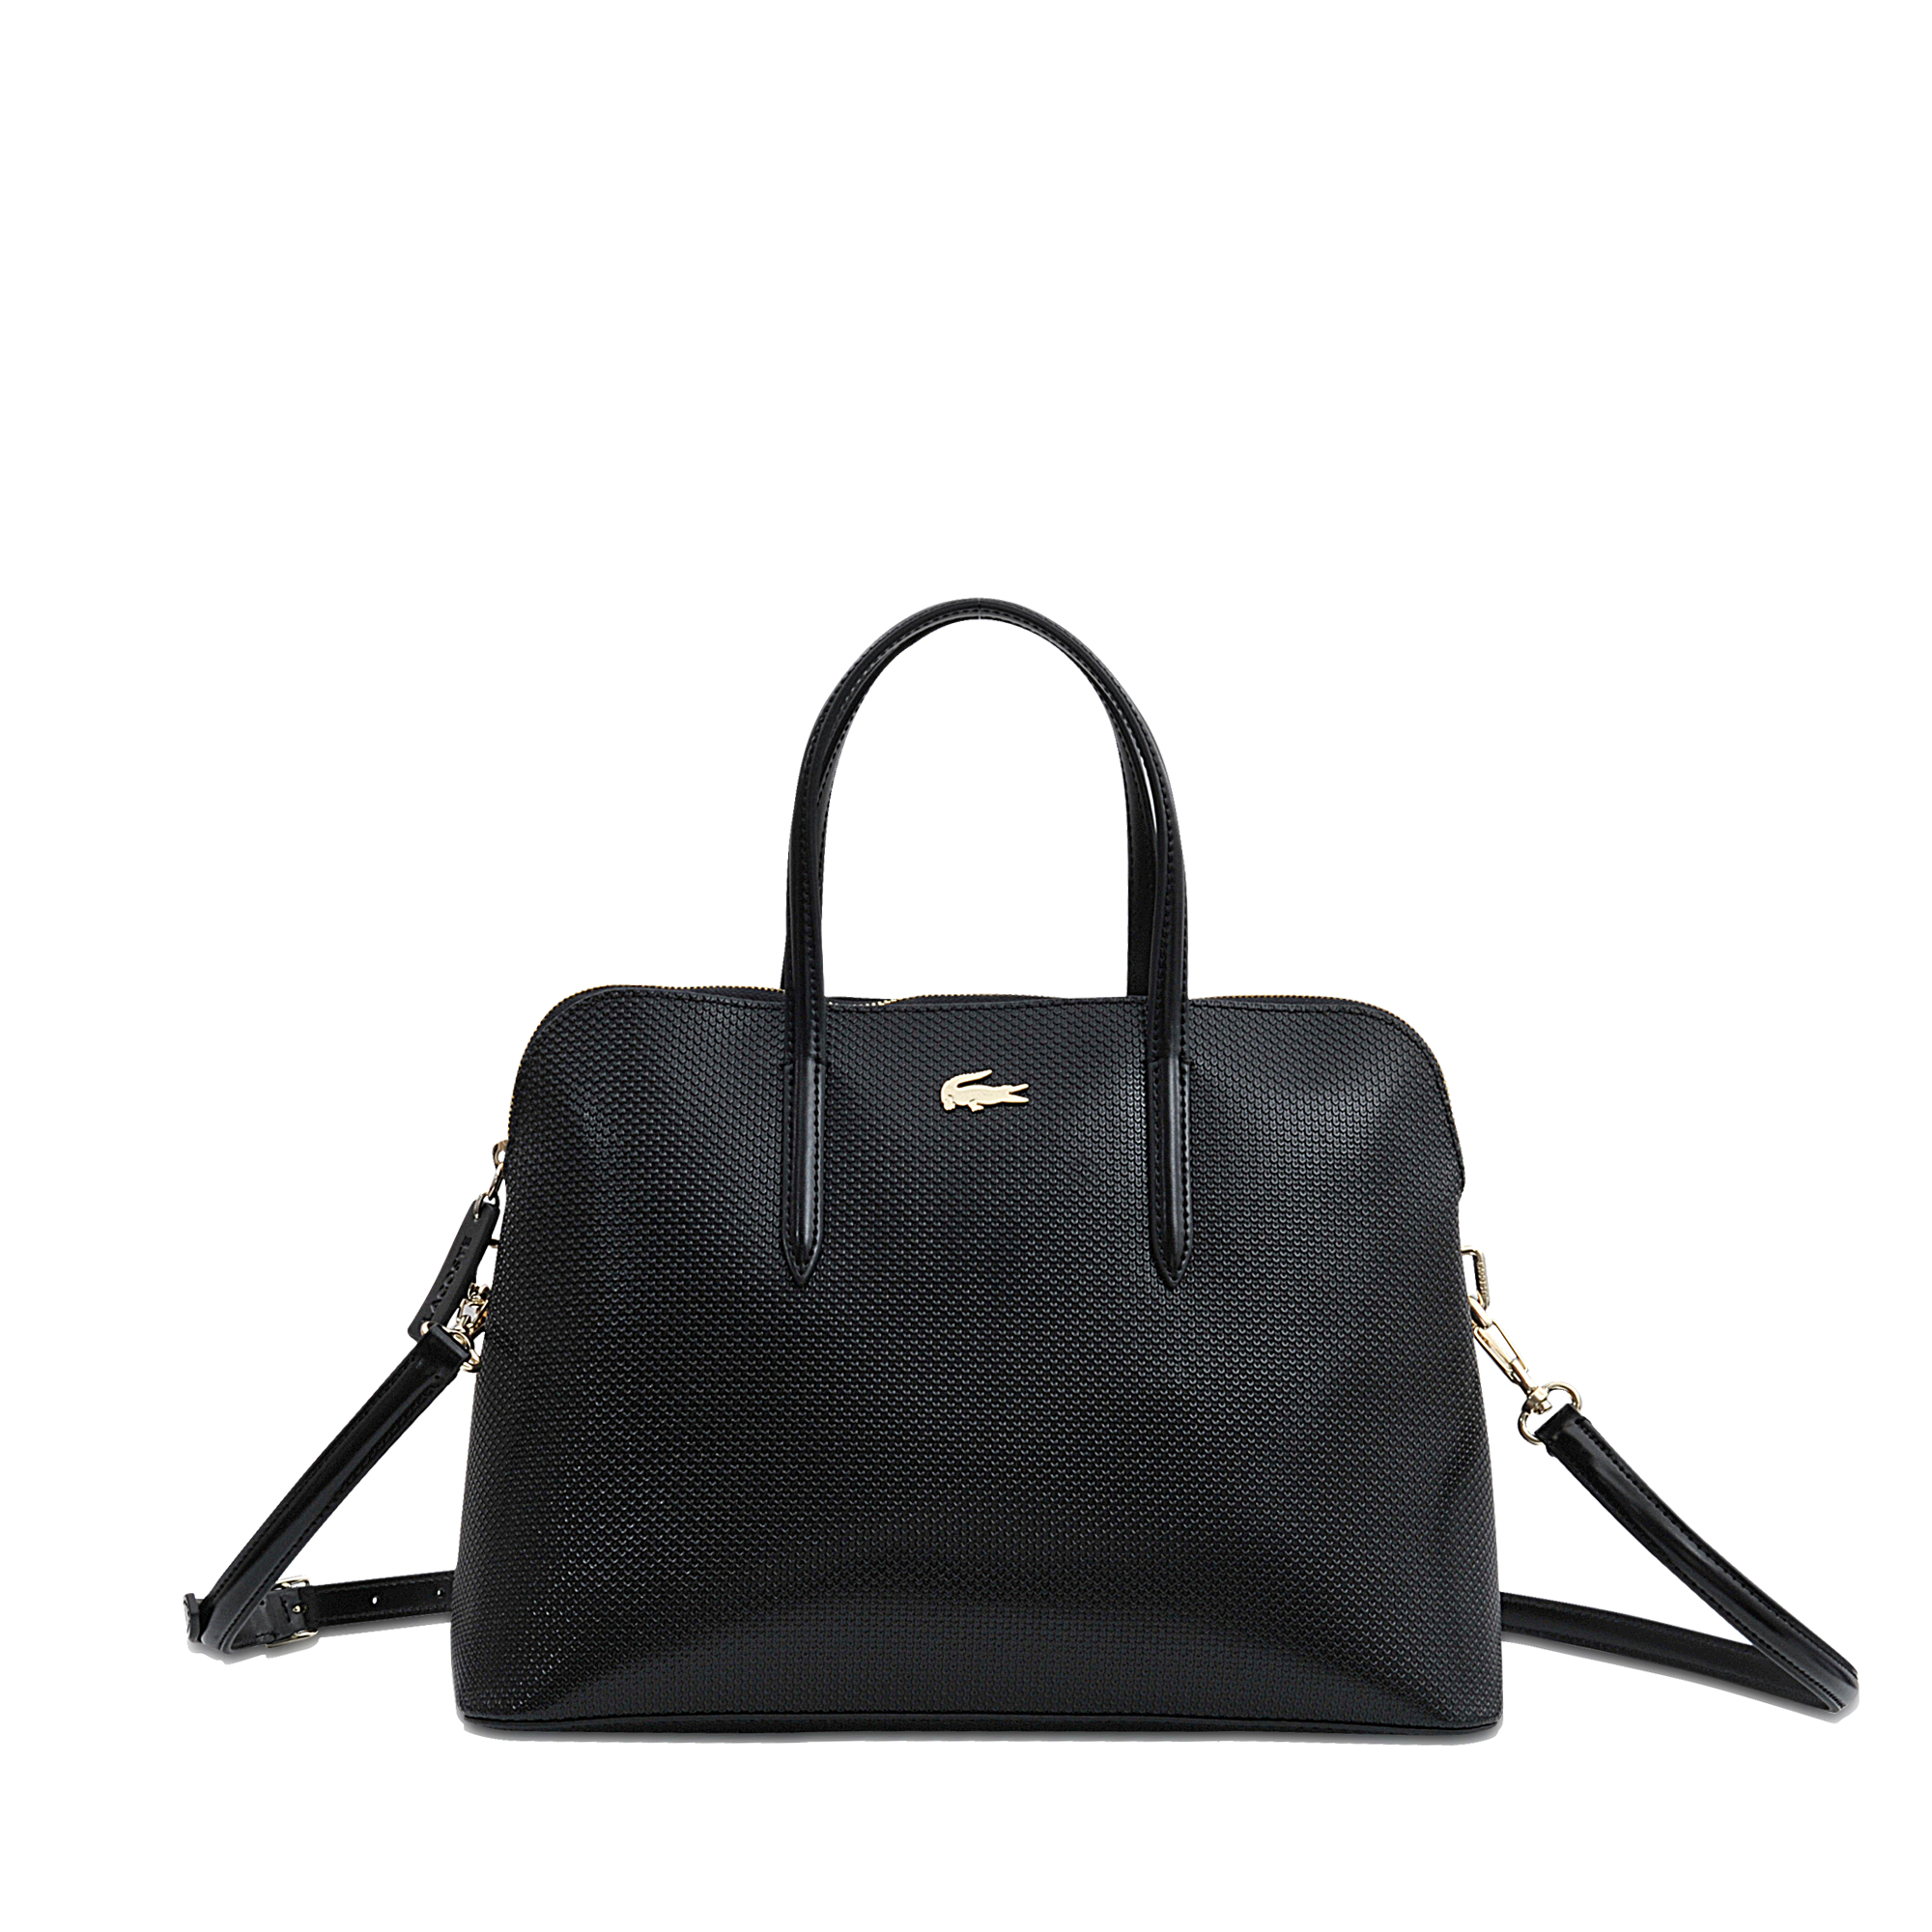 lacoste bags - photo #33